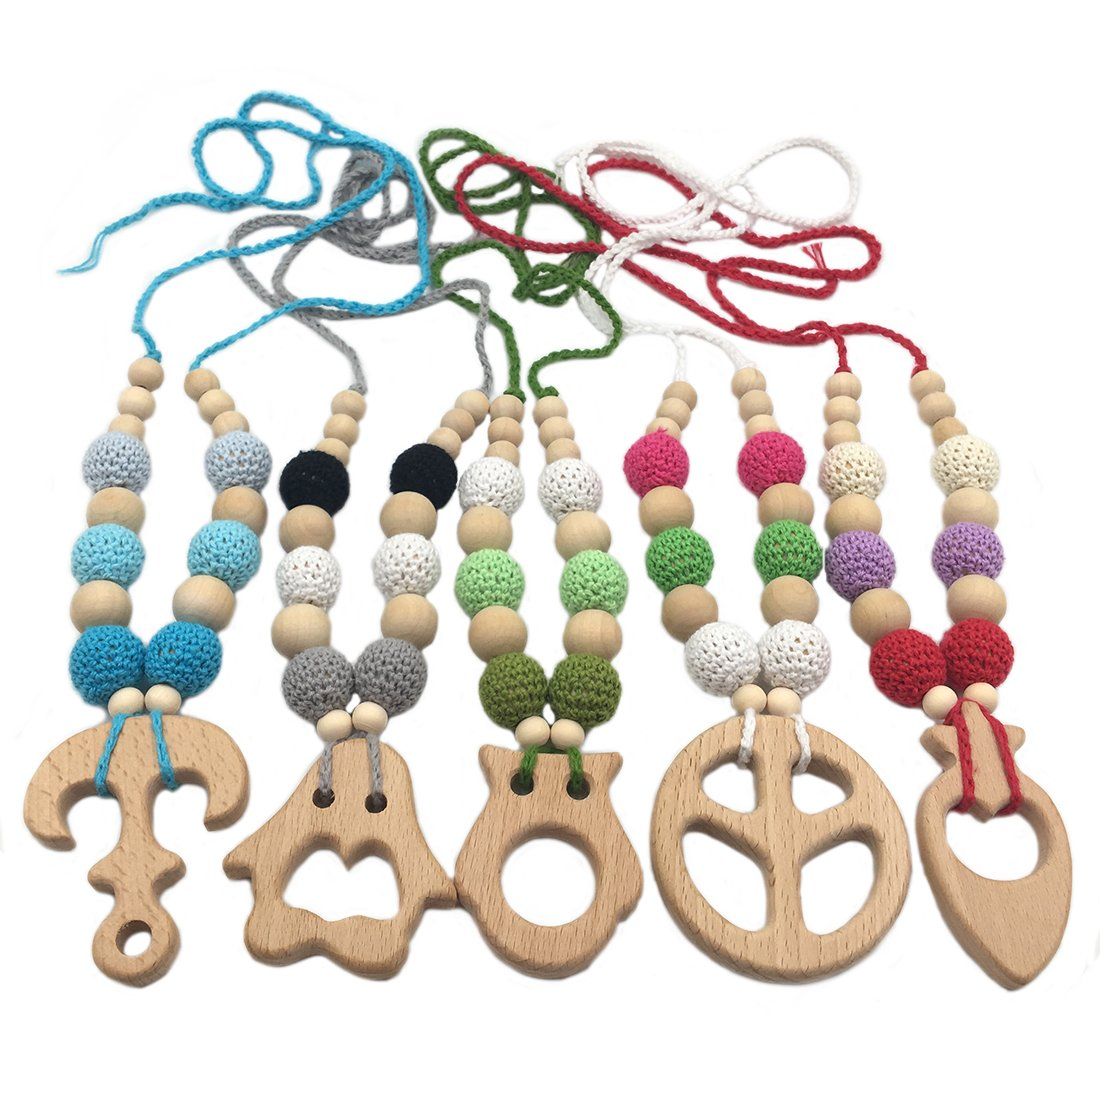 Amyster 5pcs Crochet Beads Baby Teether Necklace Beads Safe Chunky Teething Necklace Wooden Little Animal Wooden Crochet Nursing Teether Baby Toy (5pcs)